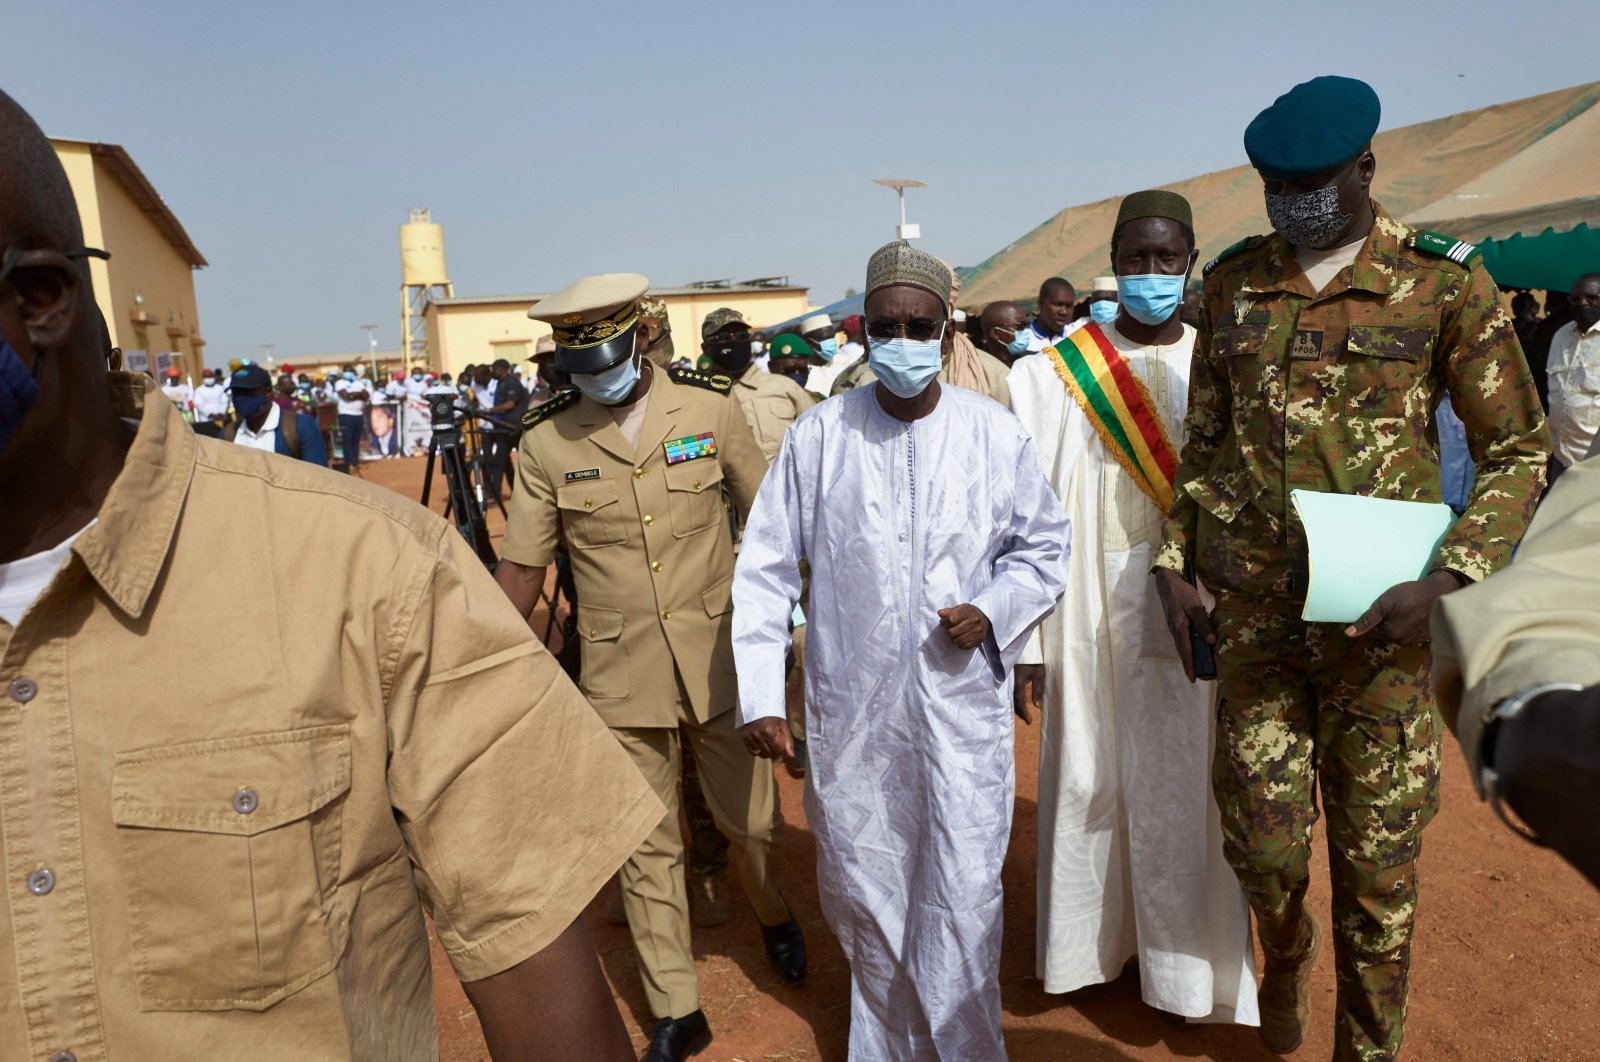 Malian Prime Minister Moctar Ouane and his delegation attend the inauguration of the new river port of Konna in central Mali, March 20, 2021. (AFP Photo)